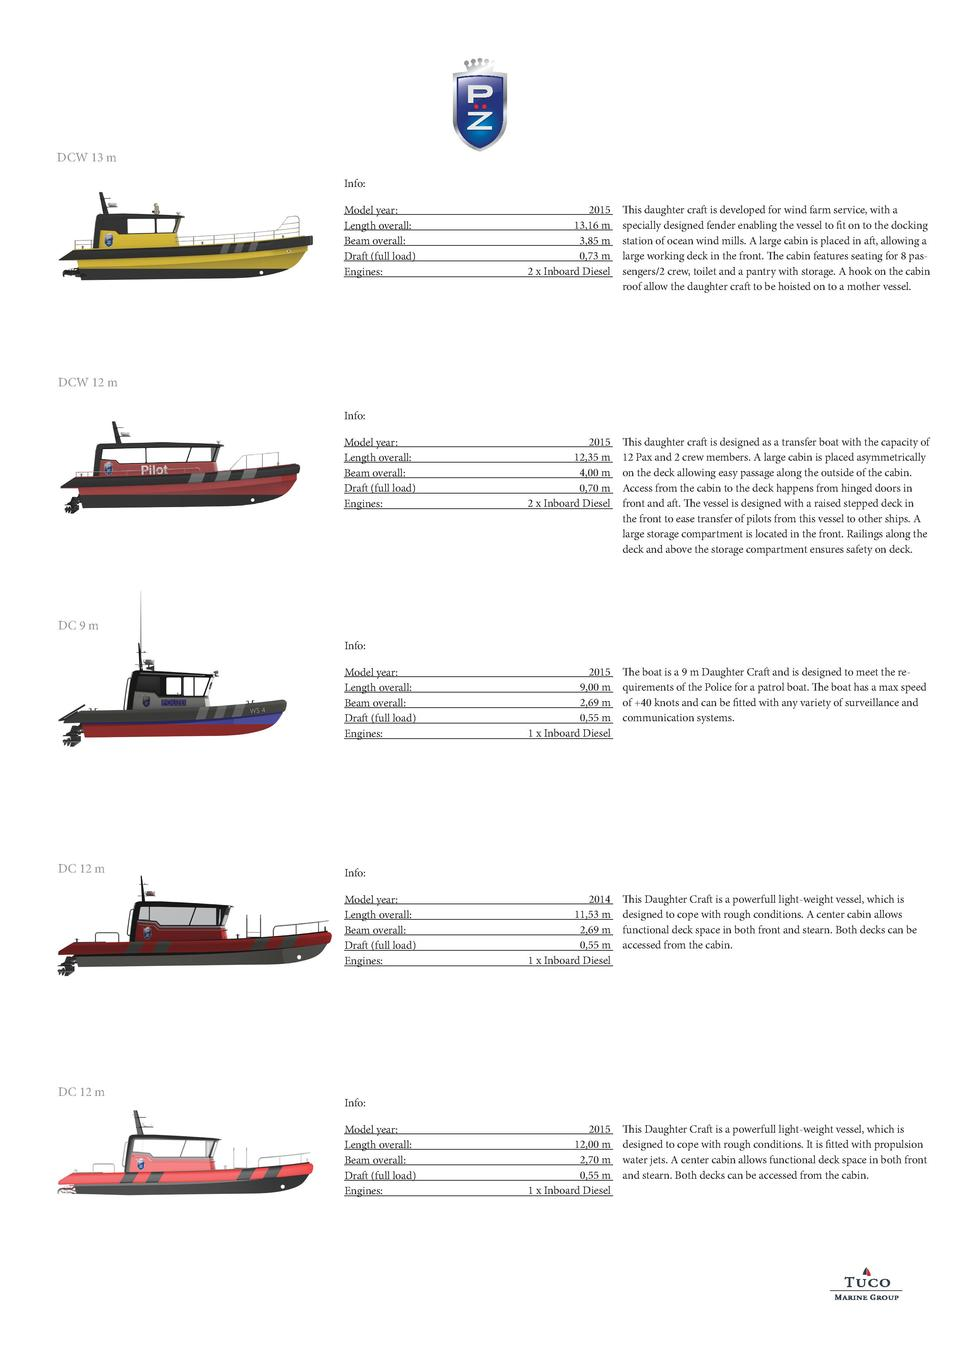 DCW 13 m Info  Model year  Length overall  Beam overall  Draft  full load  Engines   2015 13,16 m 3,85 m 0,73 m 2 x Inboar...